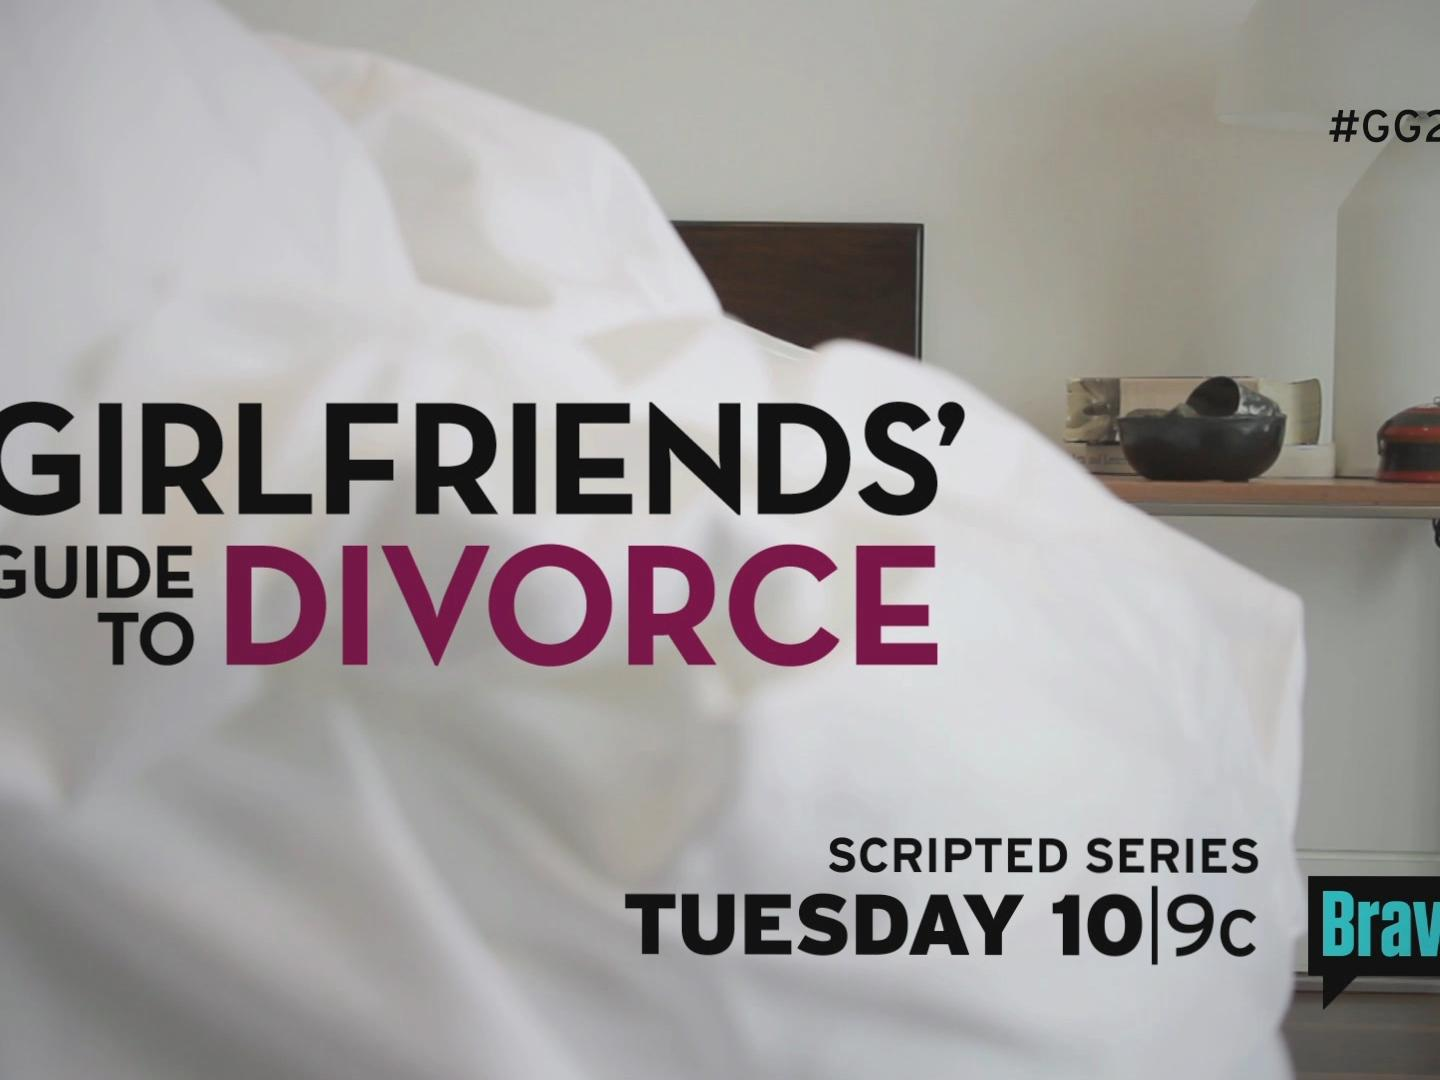 Girlfriends' Guide to Divorce Launch/Bedroom :30 Thumbnail